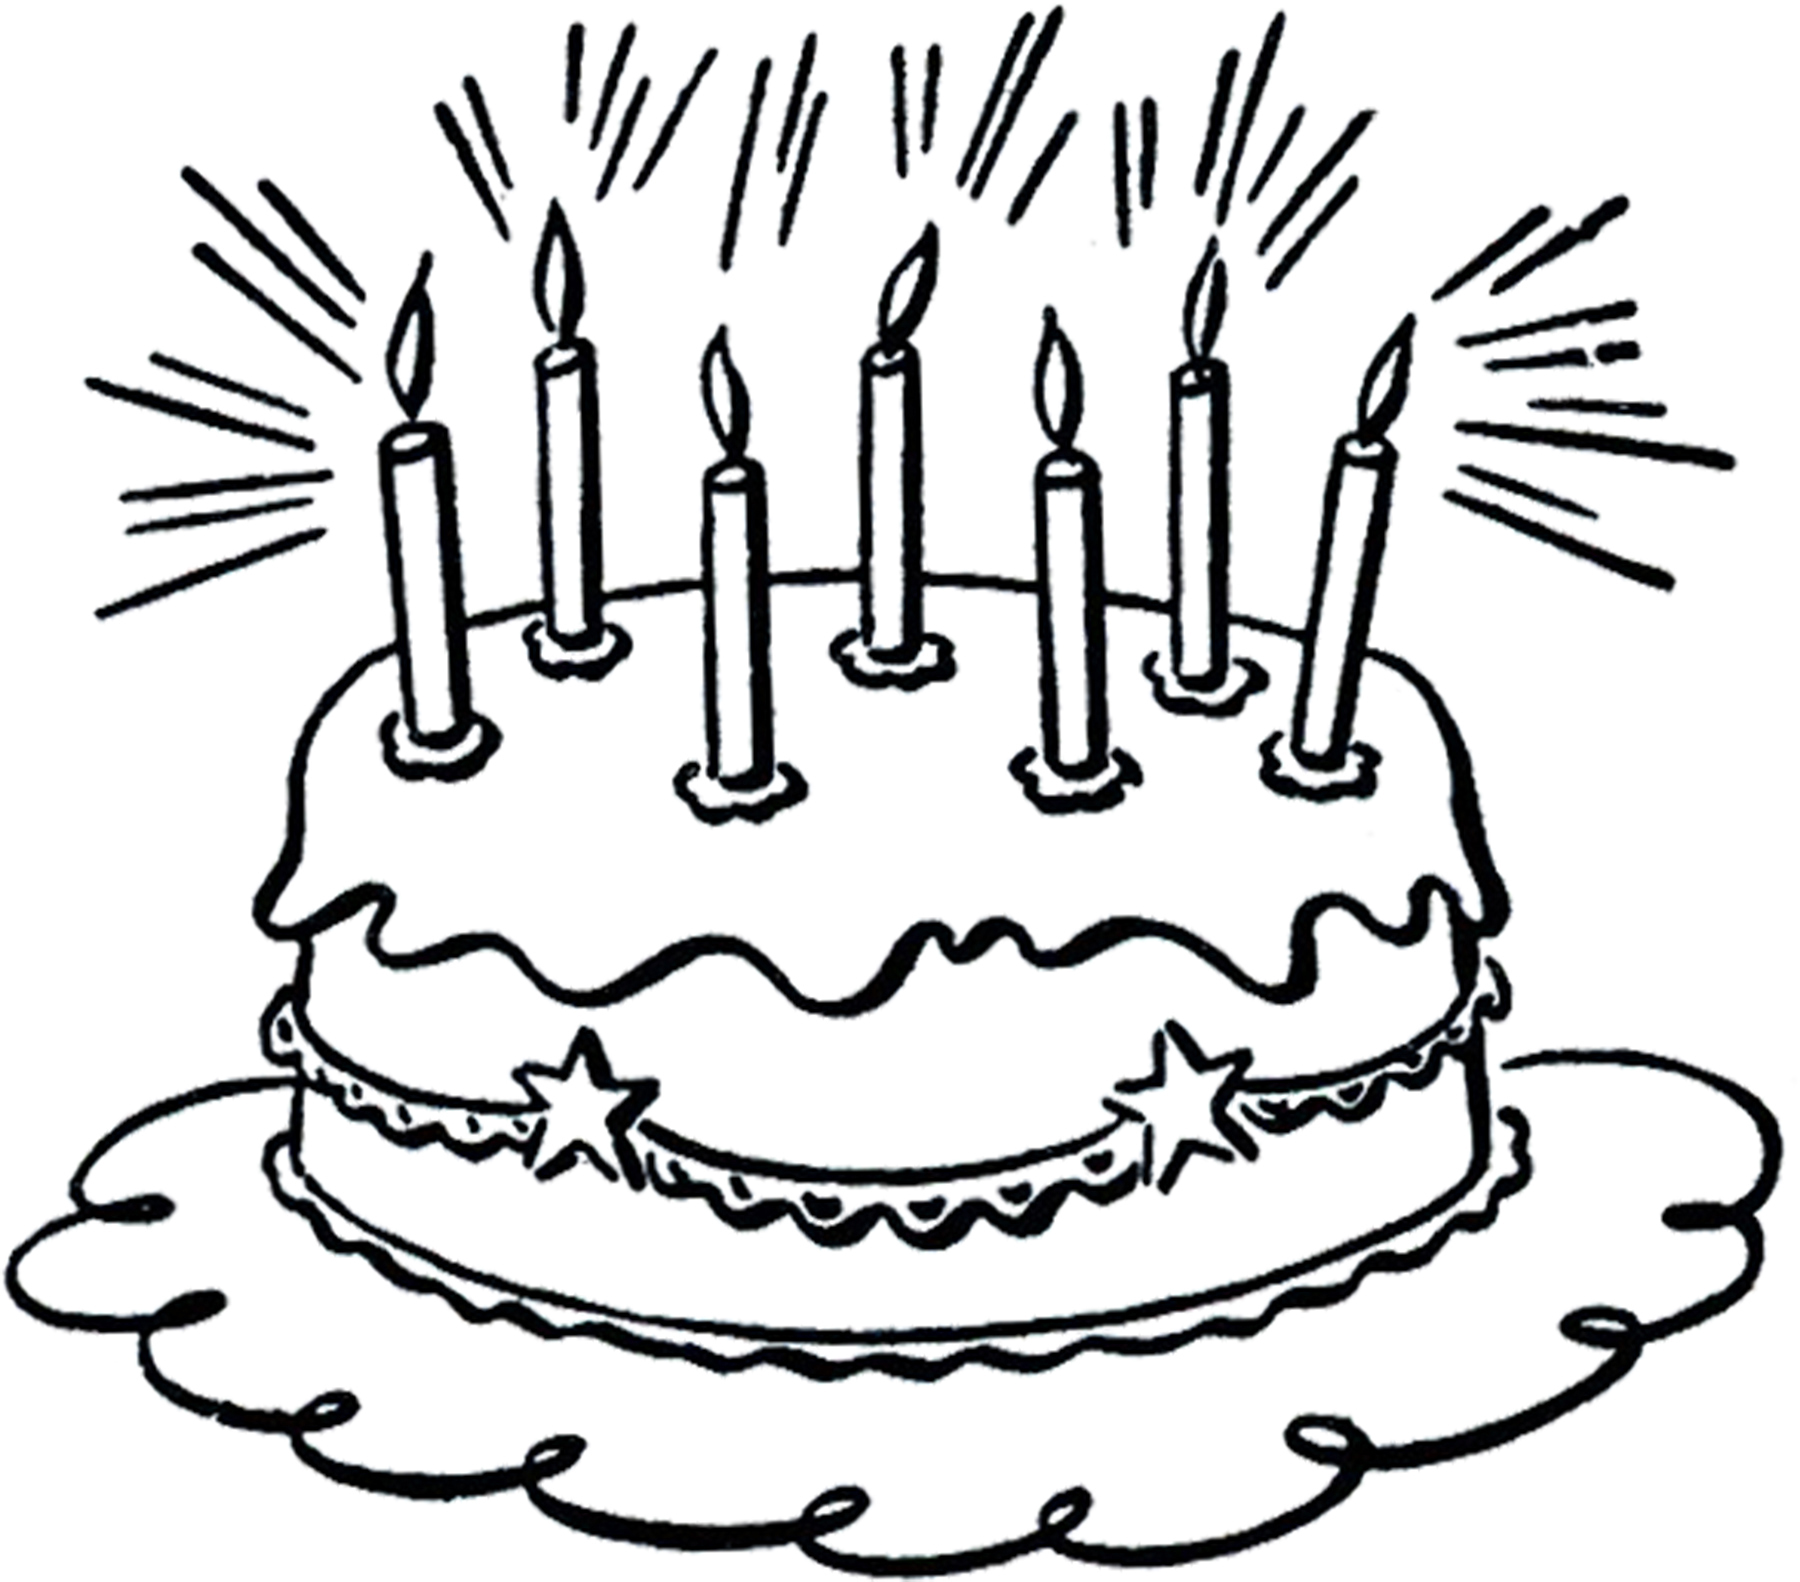 Wondrous 6 Birthday Cake Images The Graphics Fairy Funny Birthday Cards Online Alyptdamsfinfo